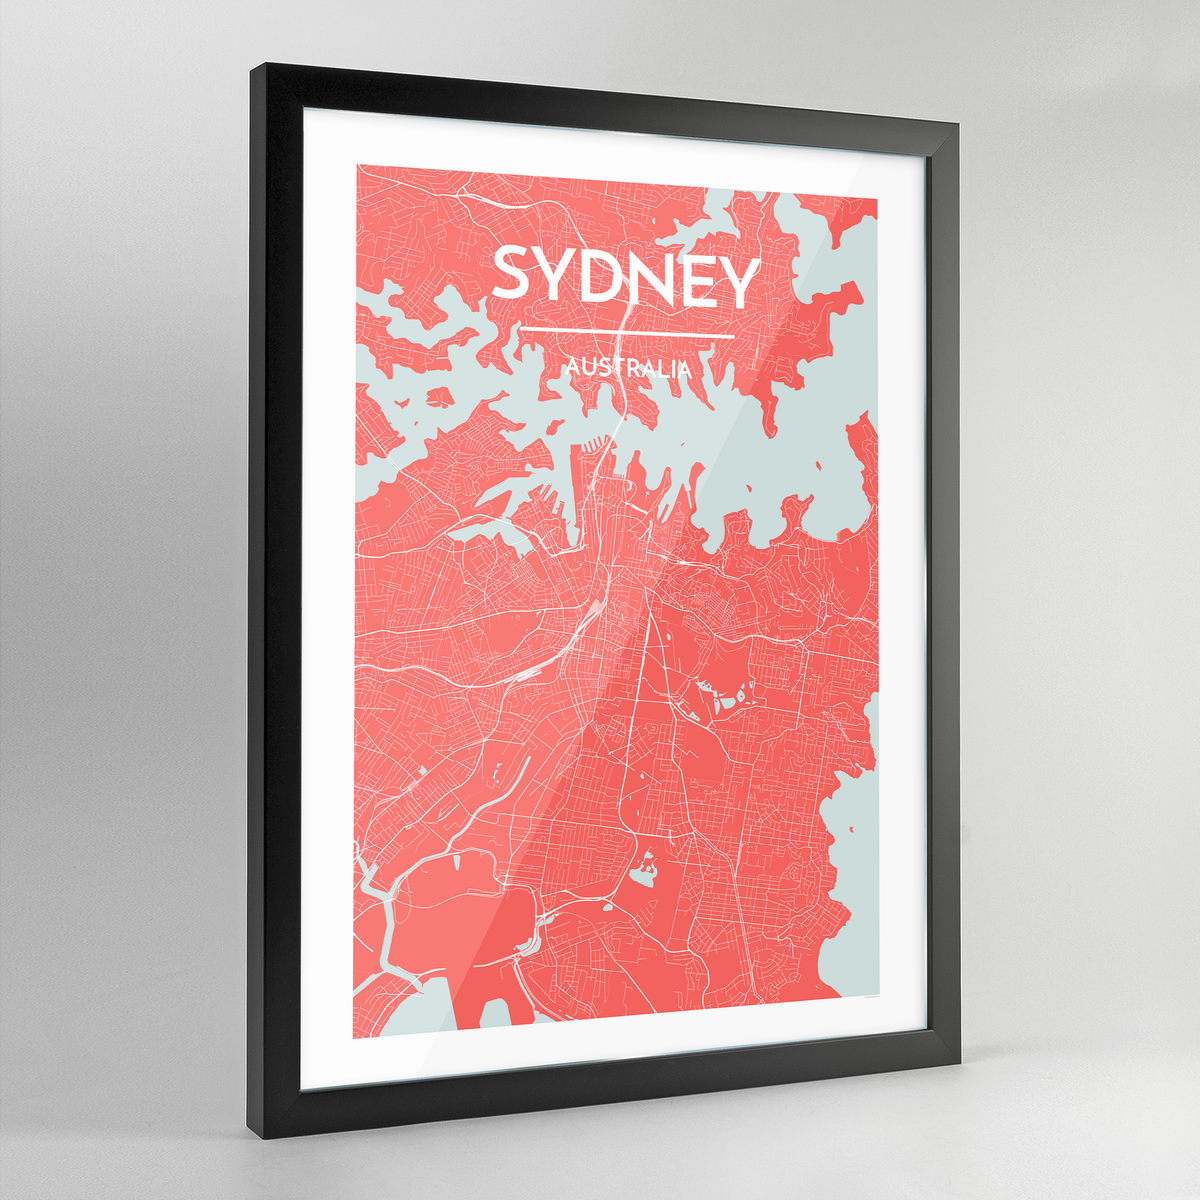 Framed Sydney City Map Art Print - Point Two Design